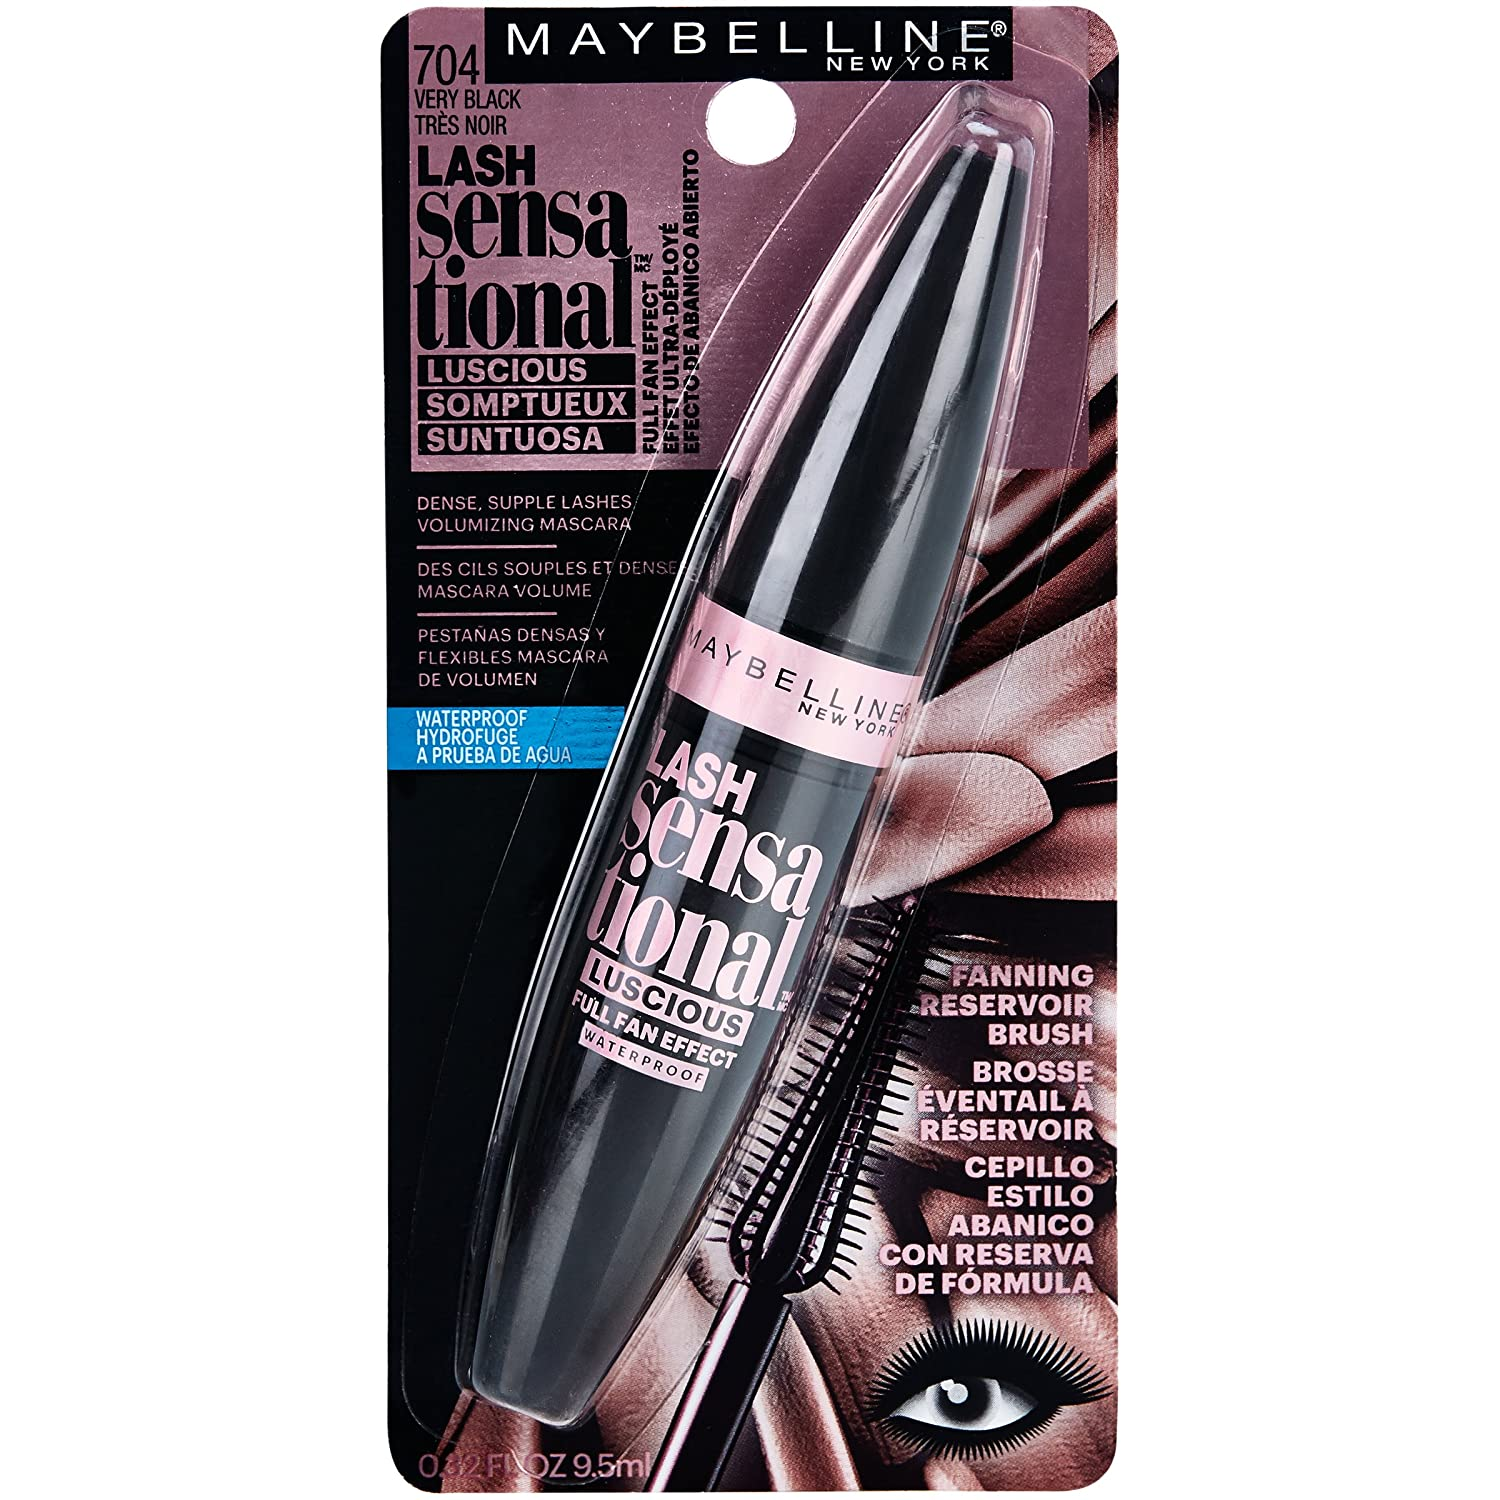 13678b7324e Buy Very Black, 1 : Maybelline New York Lash Sensational Luscious  Waterproof Mascara, Very Black, 0.3 Fluid Ounce Online at Low Prices in  India - Amazon.in